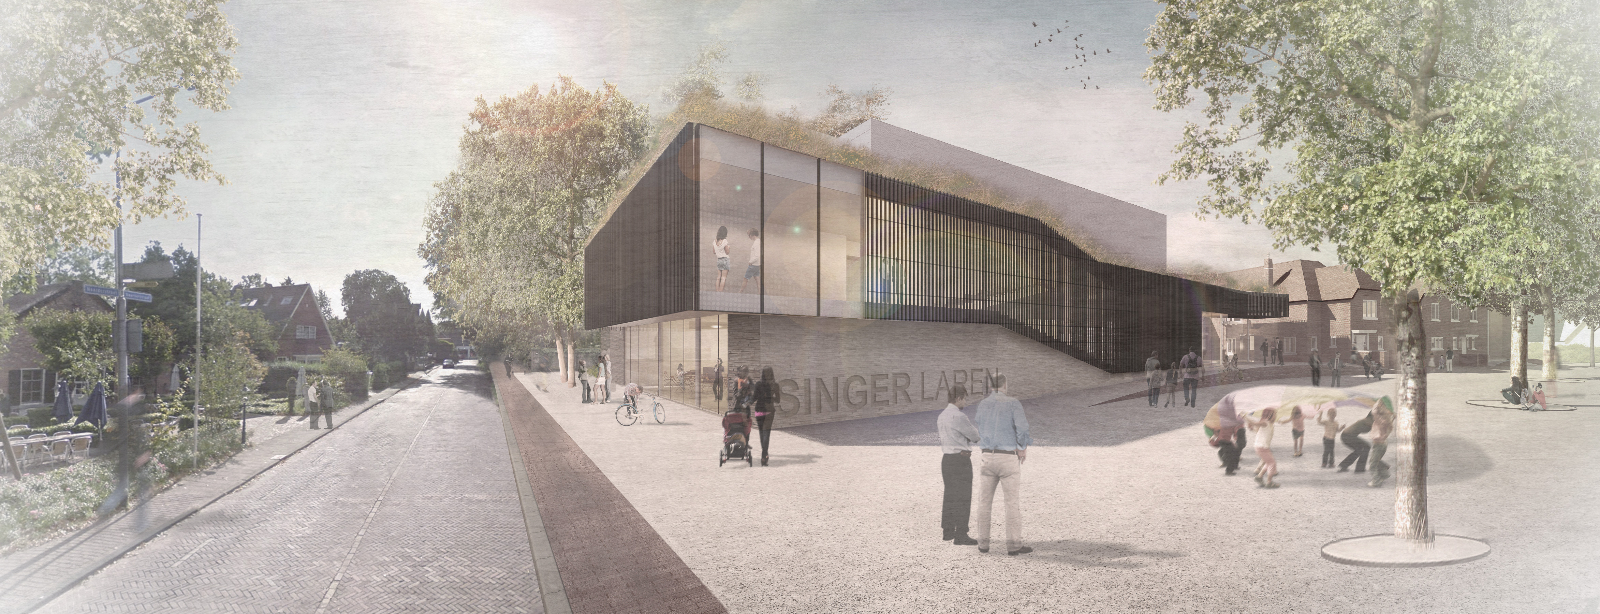 Singer Theater Laren - Artist Impression